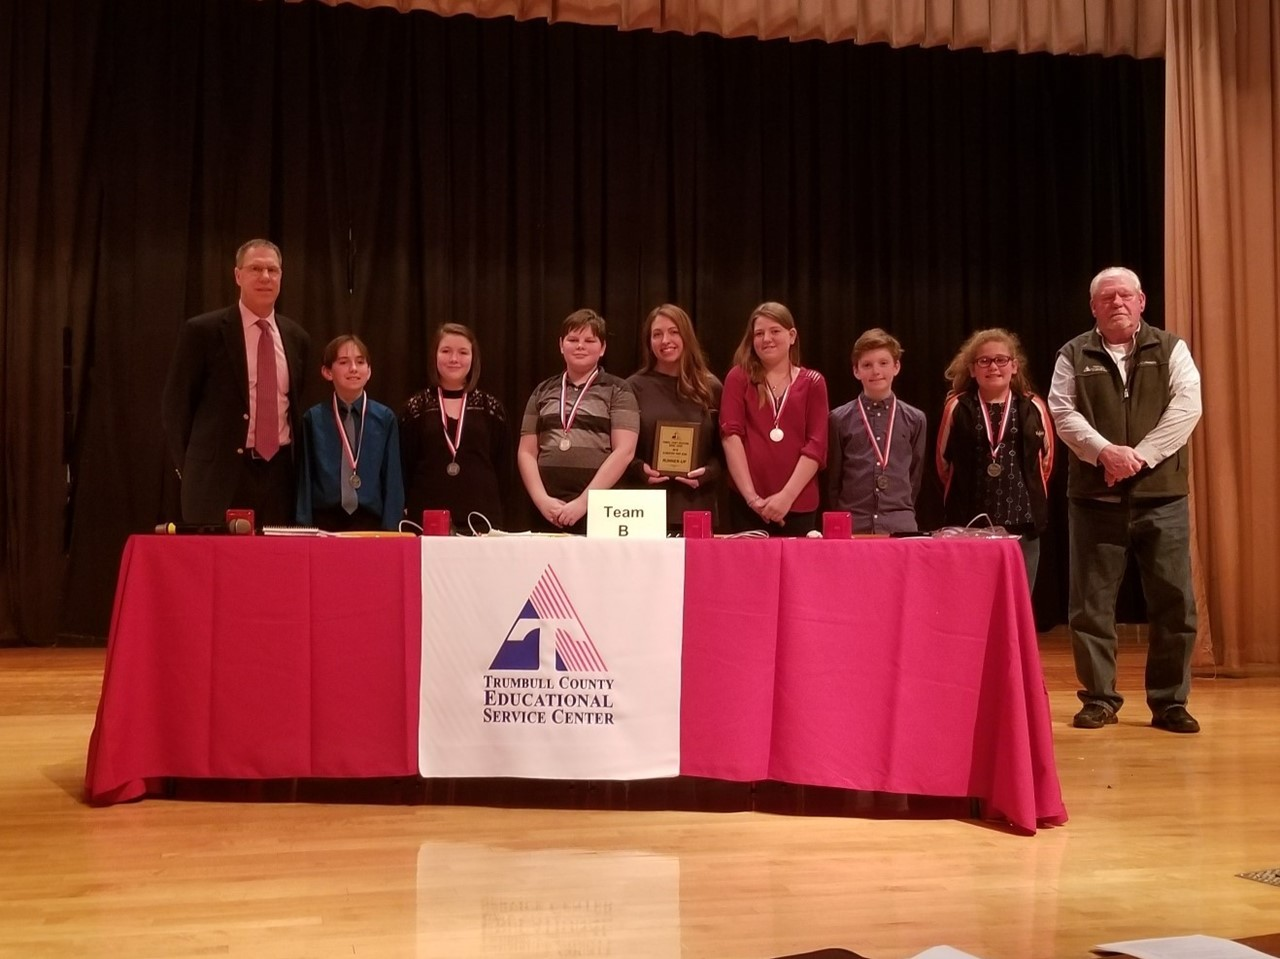 Southington Elementary prep bowl team was recognized as the runner up of the TCESC elementary prep bowl competition.